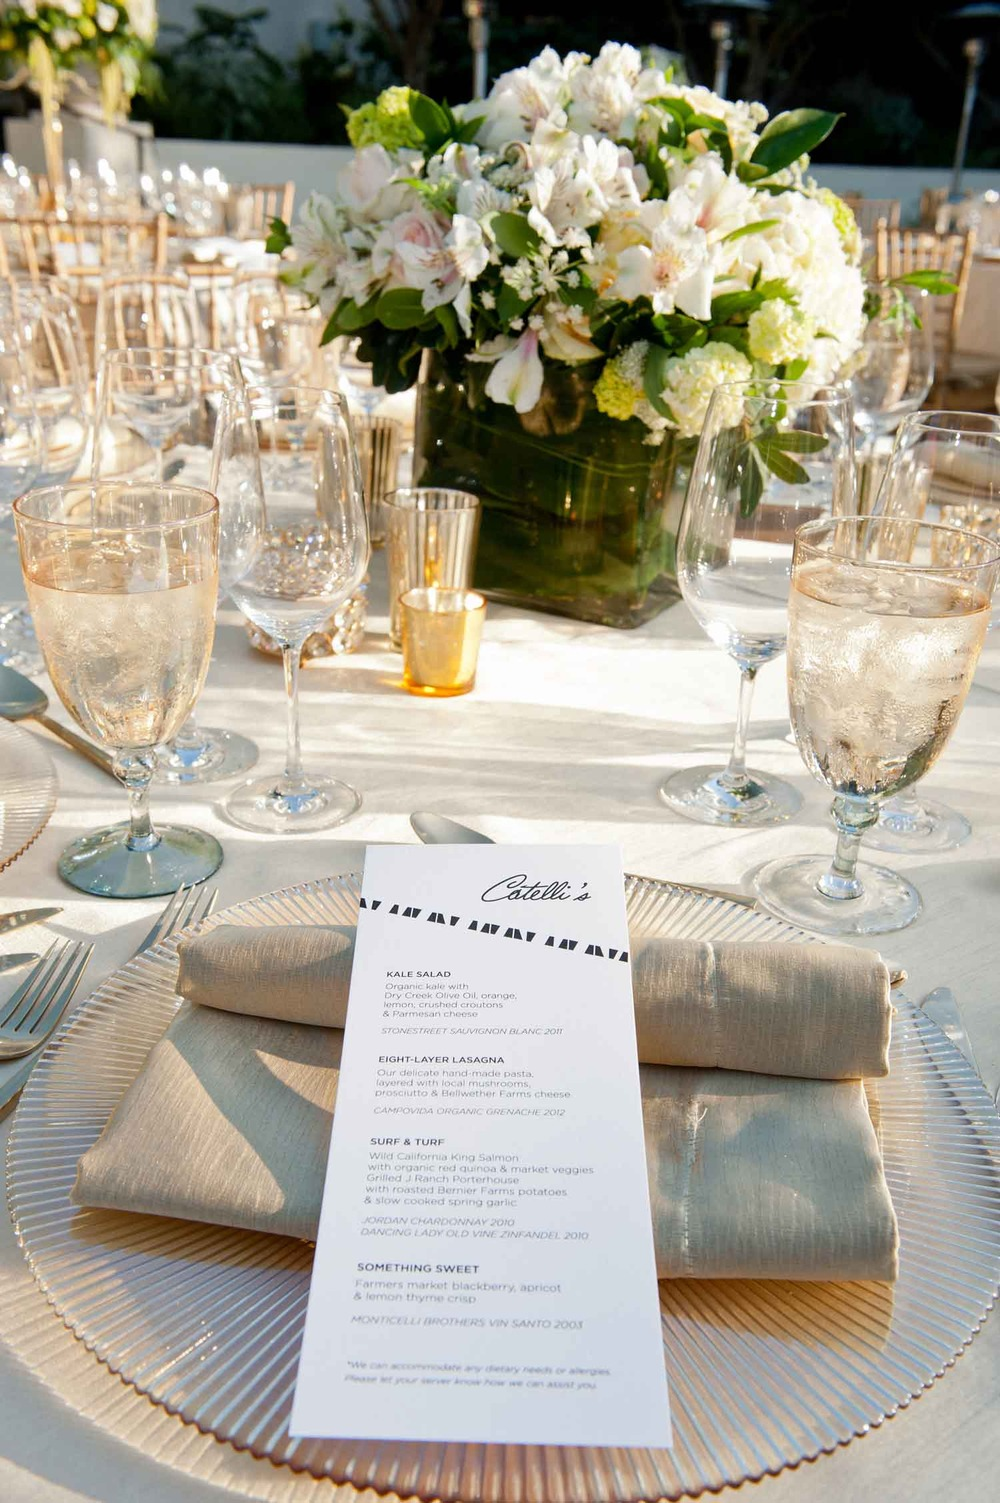 menu-card-on-table.jpg